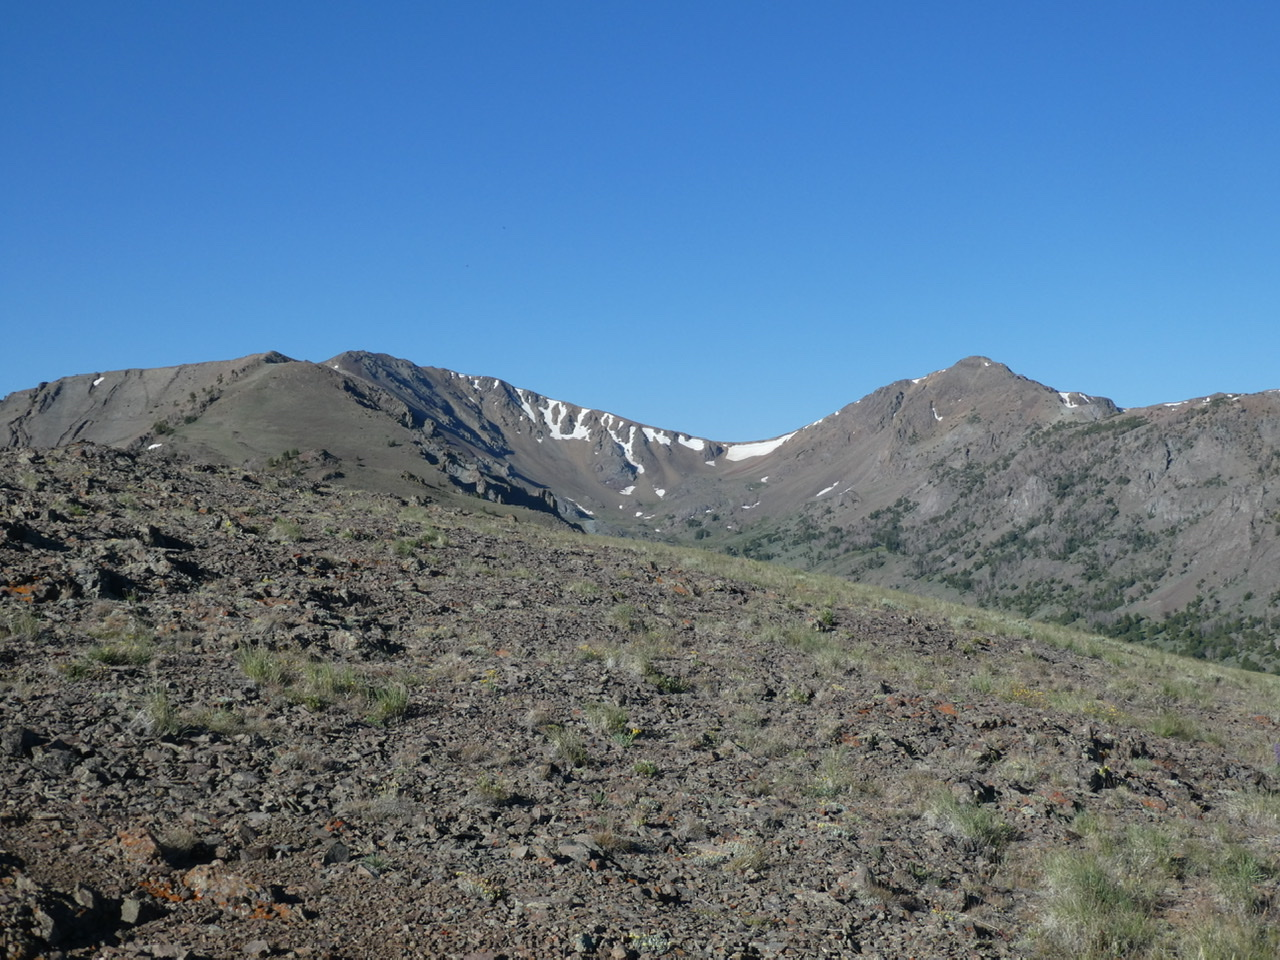 The Ramp on the right and Double U Peak on the left viewed from the Northeast Ridge.